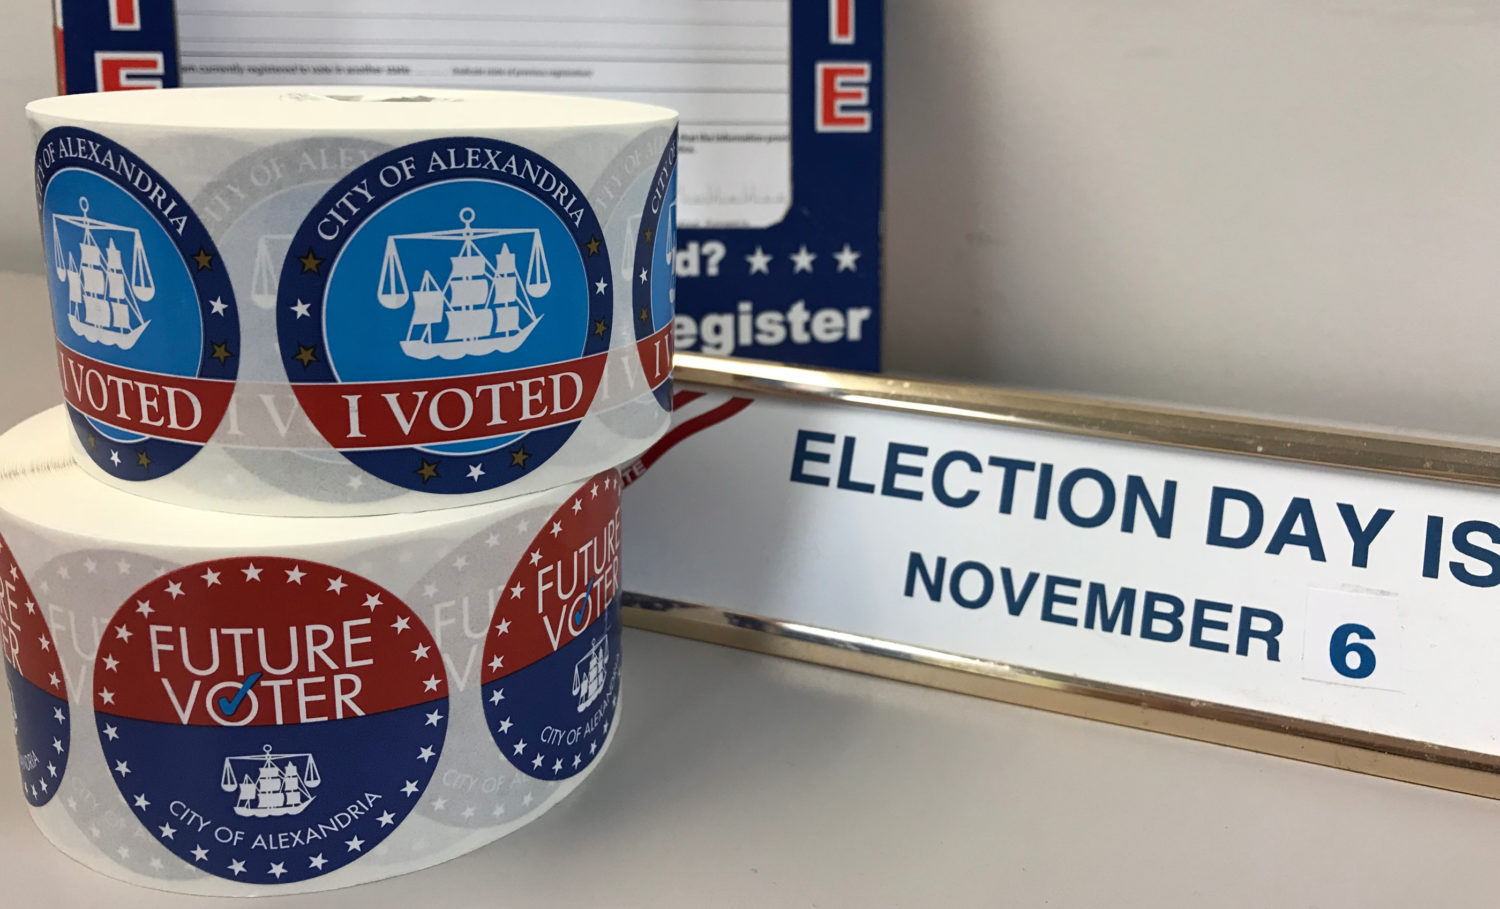 Voters in alexandria and their children will be getting newly redesigned i voted and future voter stickers on election day